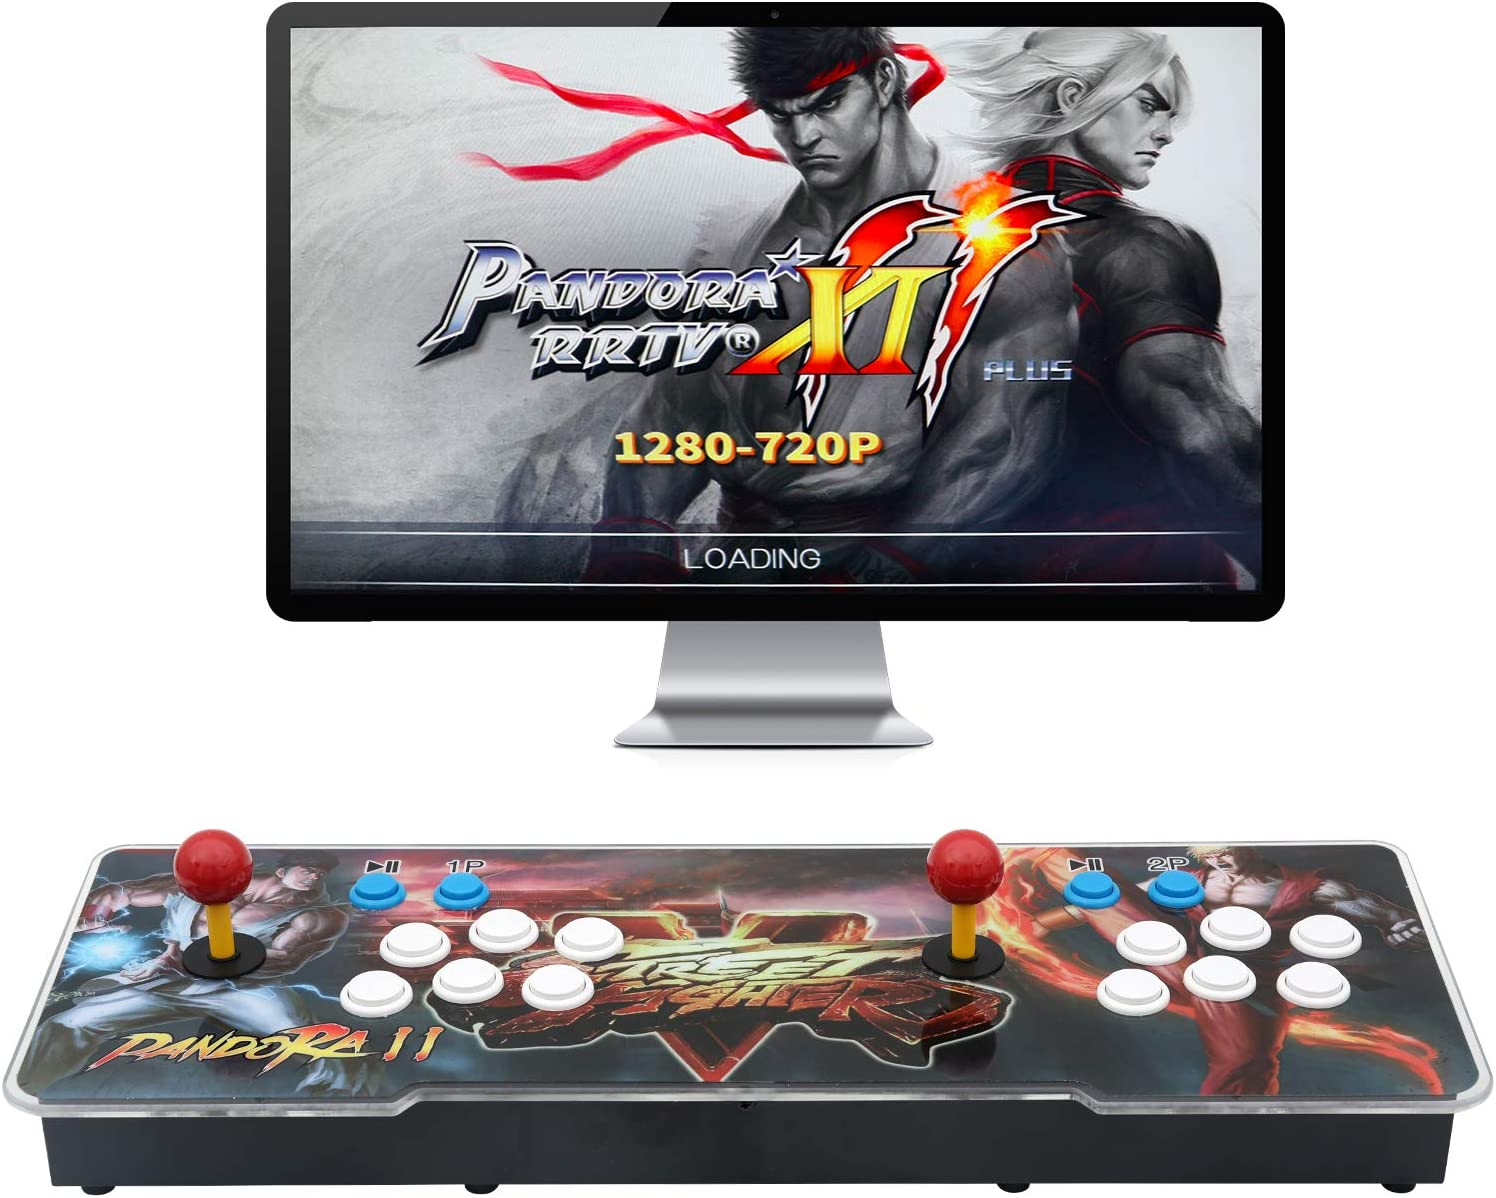 【3003 Games in 1】 Arcade Game Console ,Pandora Treasure 3D Double Stick,3003 Classic Arcade Game,Search Games, Support 3D Games,Favorite List, 4 Players Online Game,1280X720 Full HD Video Game (Black)